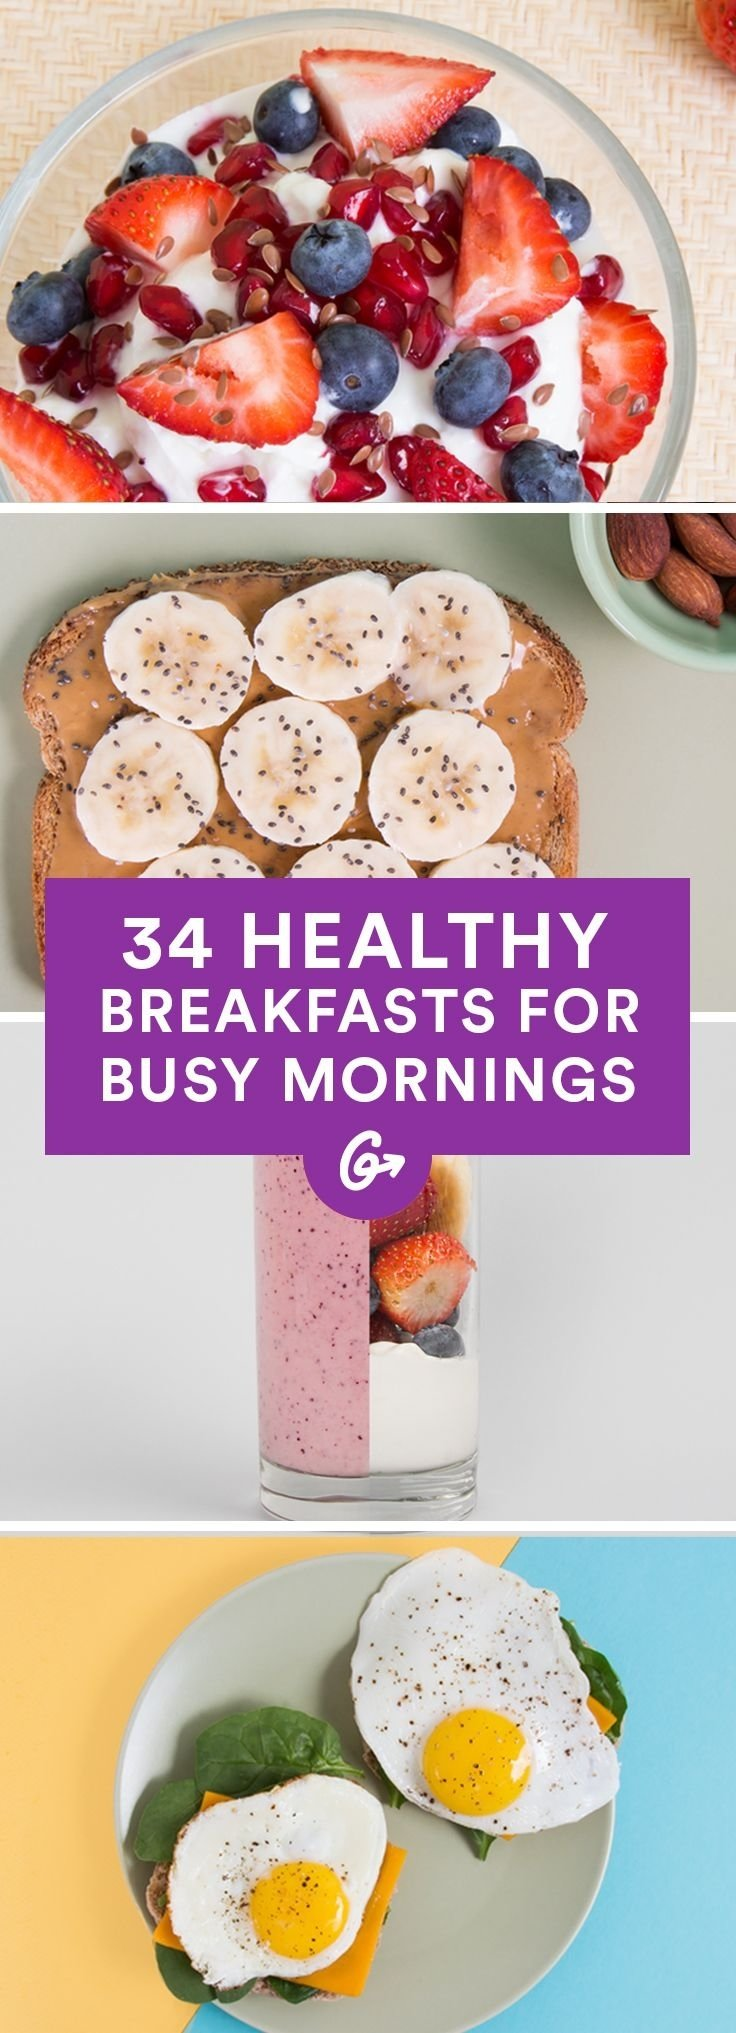 10 Famous Fast And Easy Breakfast Ideas 39 healthy breakfasts for busy mornings healthy breakfasts 1